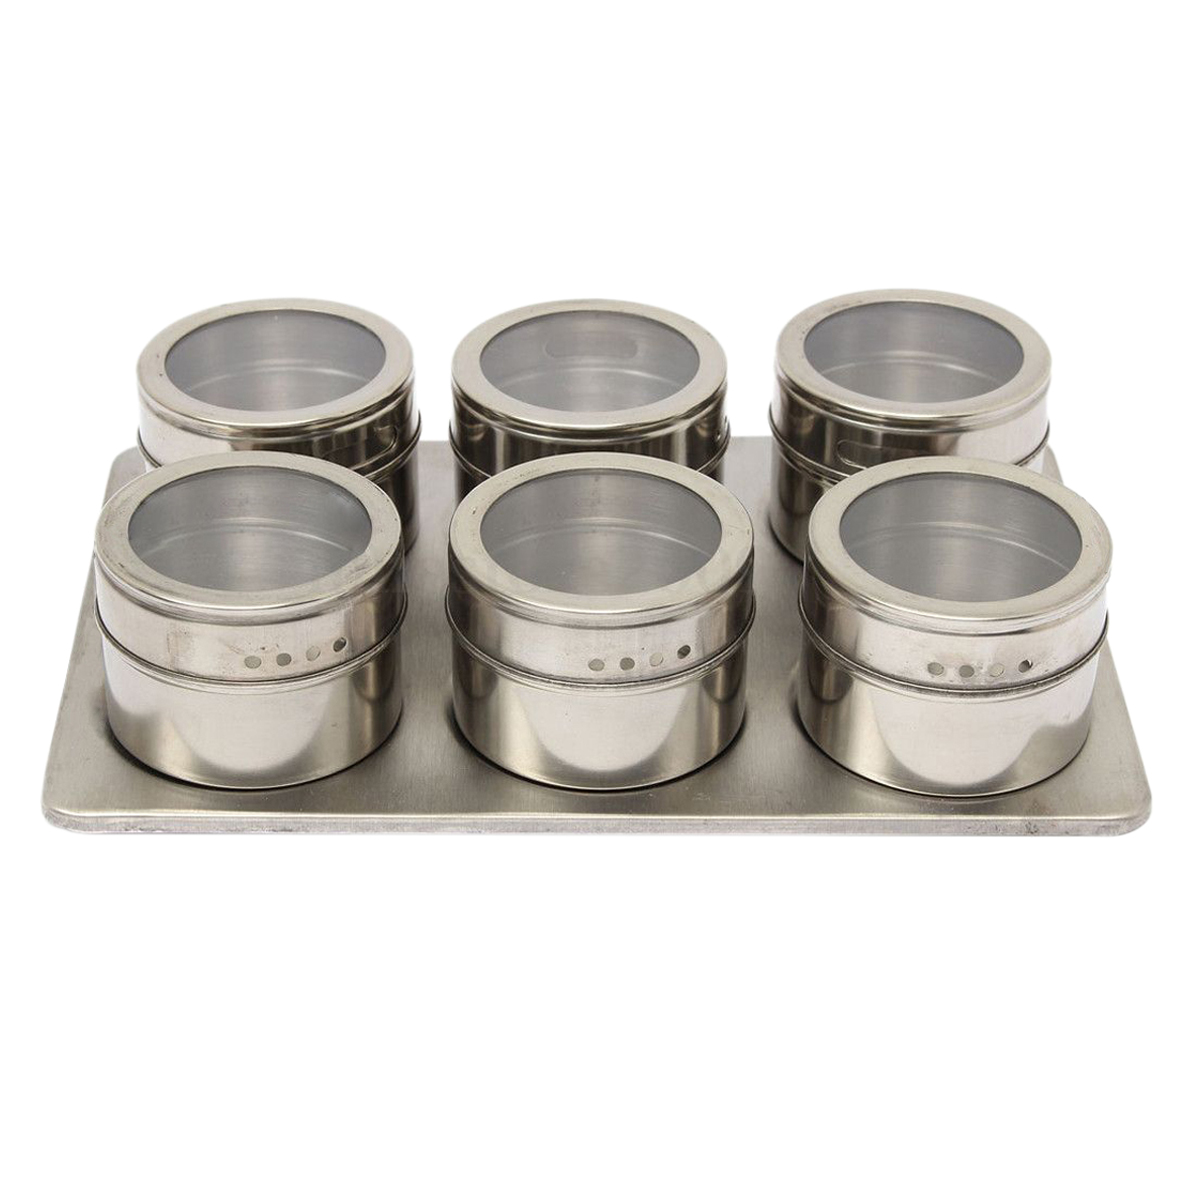 7in1 stainless steel Magnetic Spice Jar Set Kitchen Rack Holder Seasonings Containers Condiments Storage Box